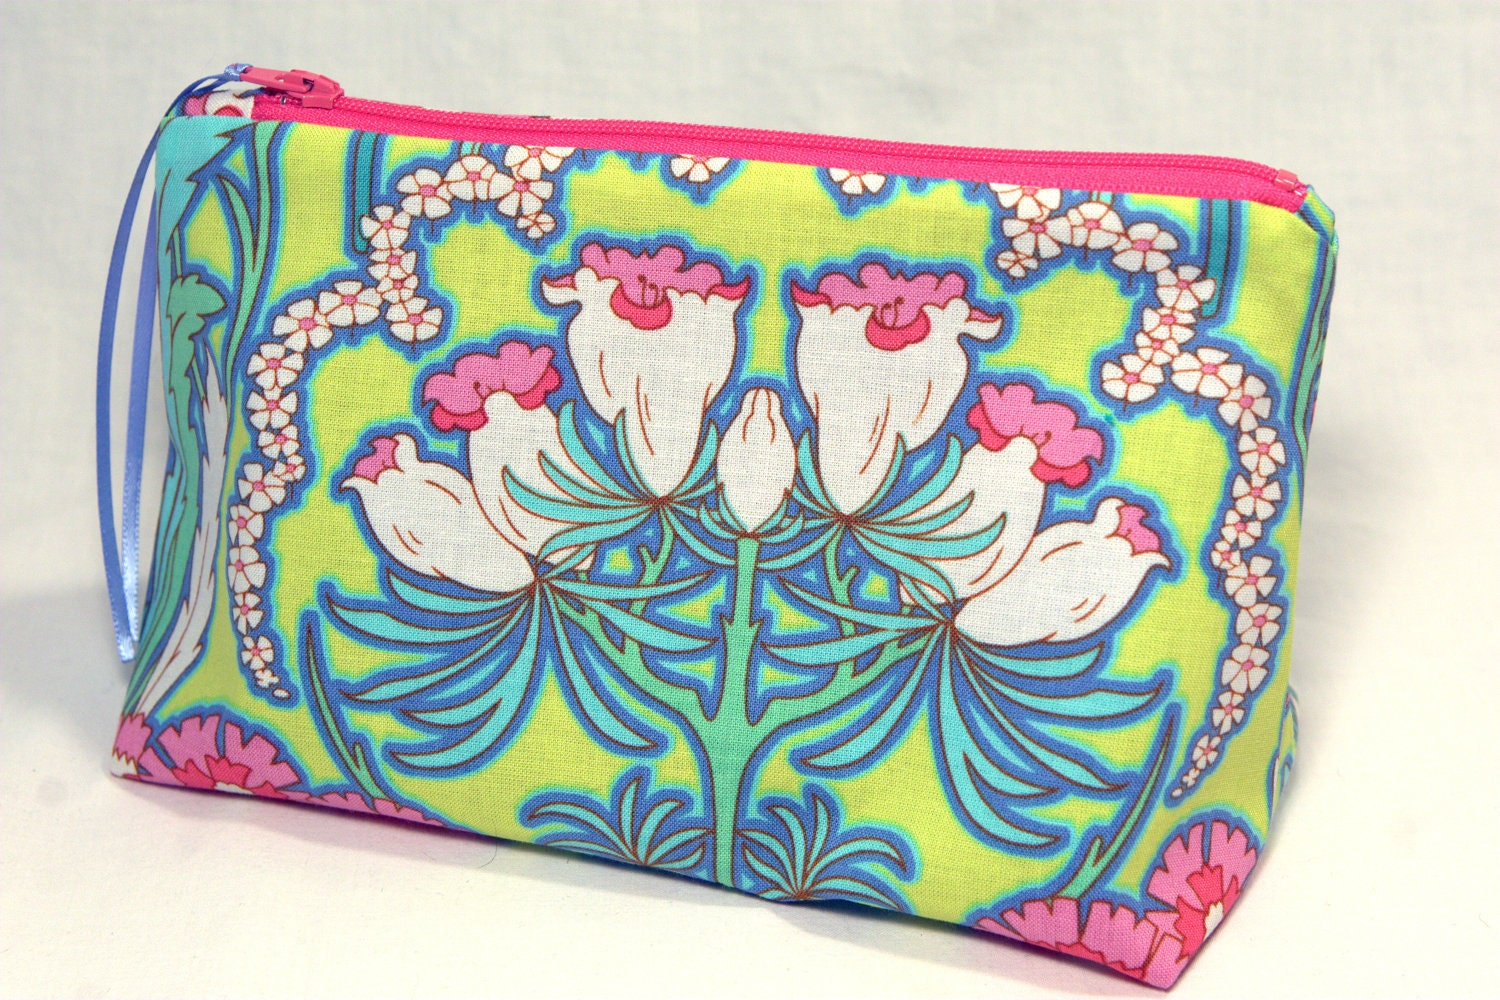 Zippered Pouch, Makeup Bag, or Pencil Case